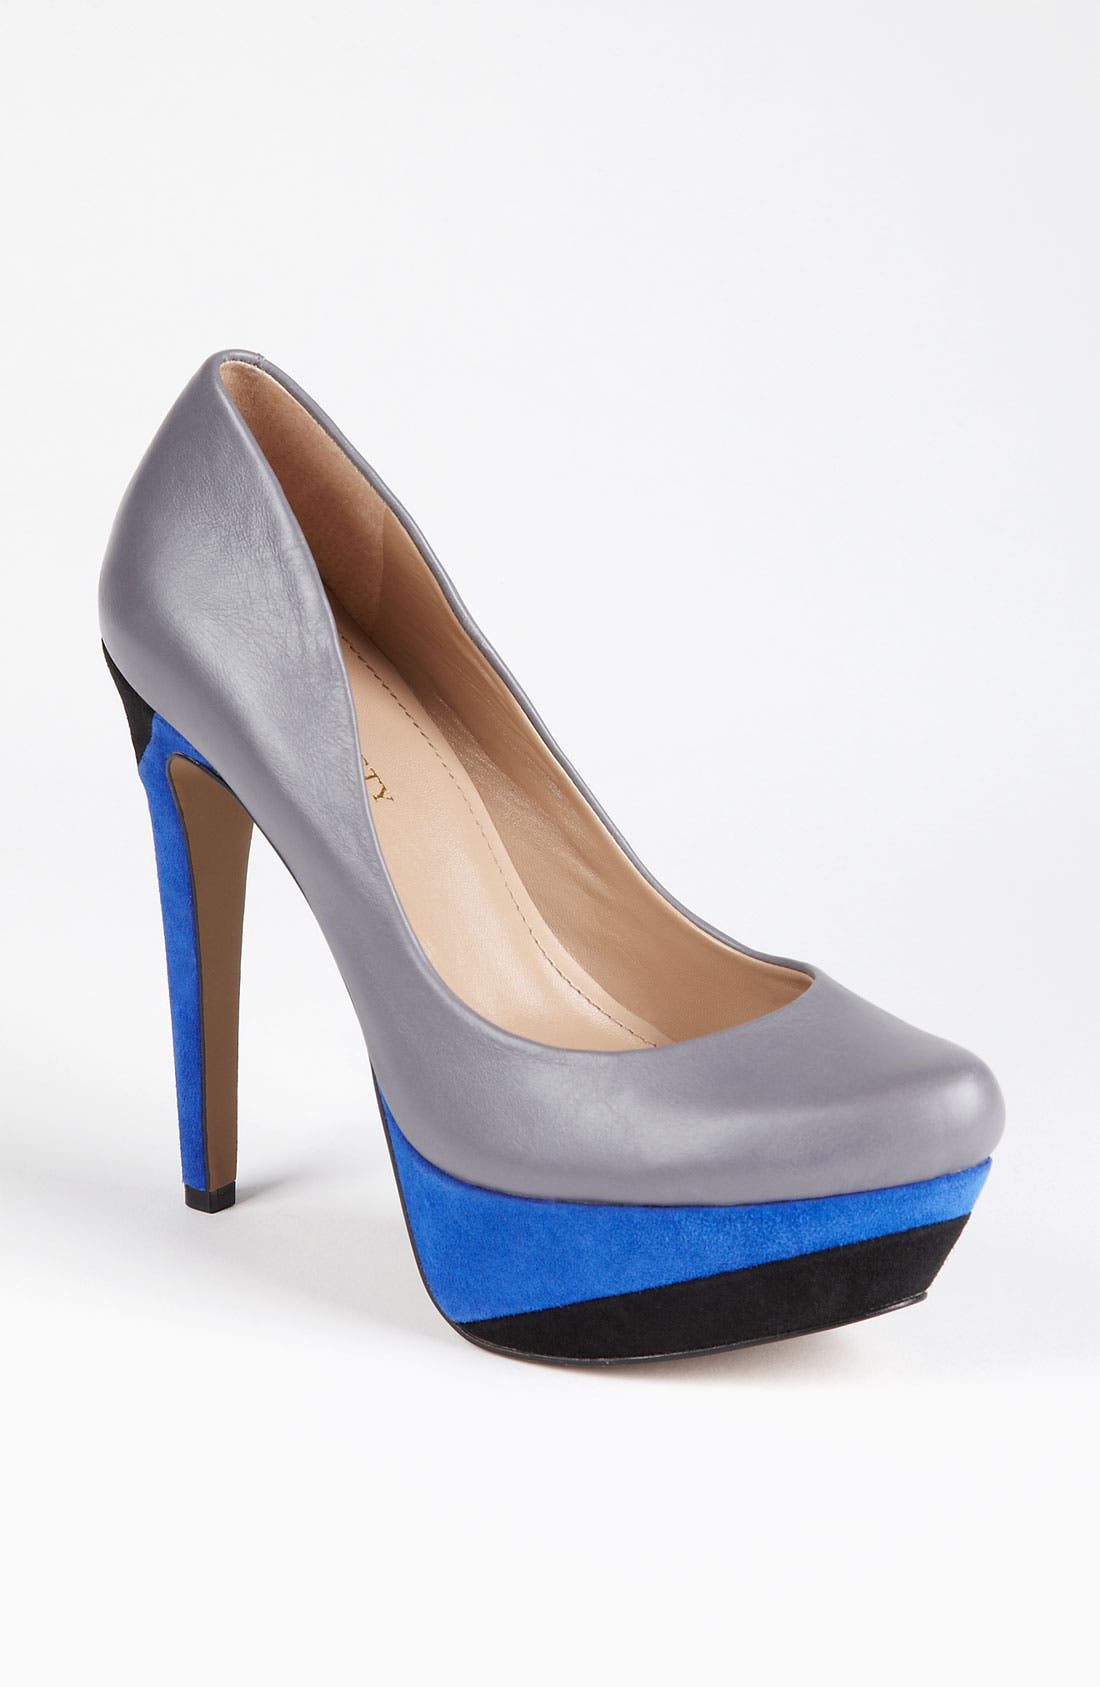 Alternate Image 1 Selected - Sole Society 'Layla' Platform Pump